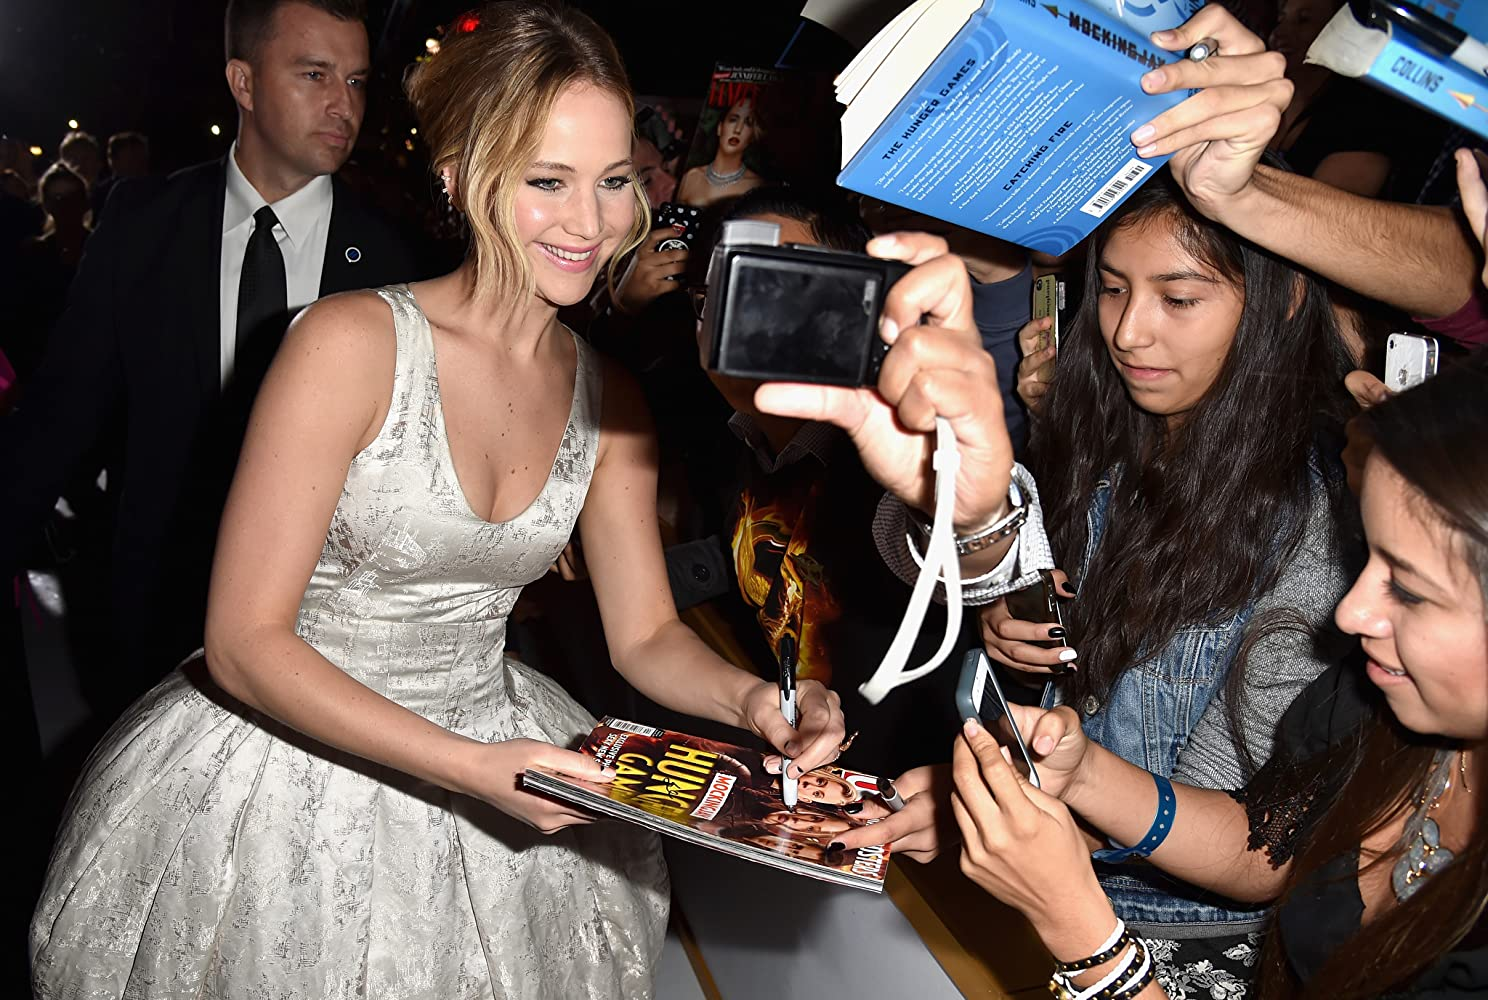 Jennifer Lawrence at an event for The Hunger Games: Mockingjay